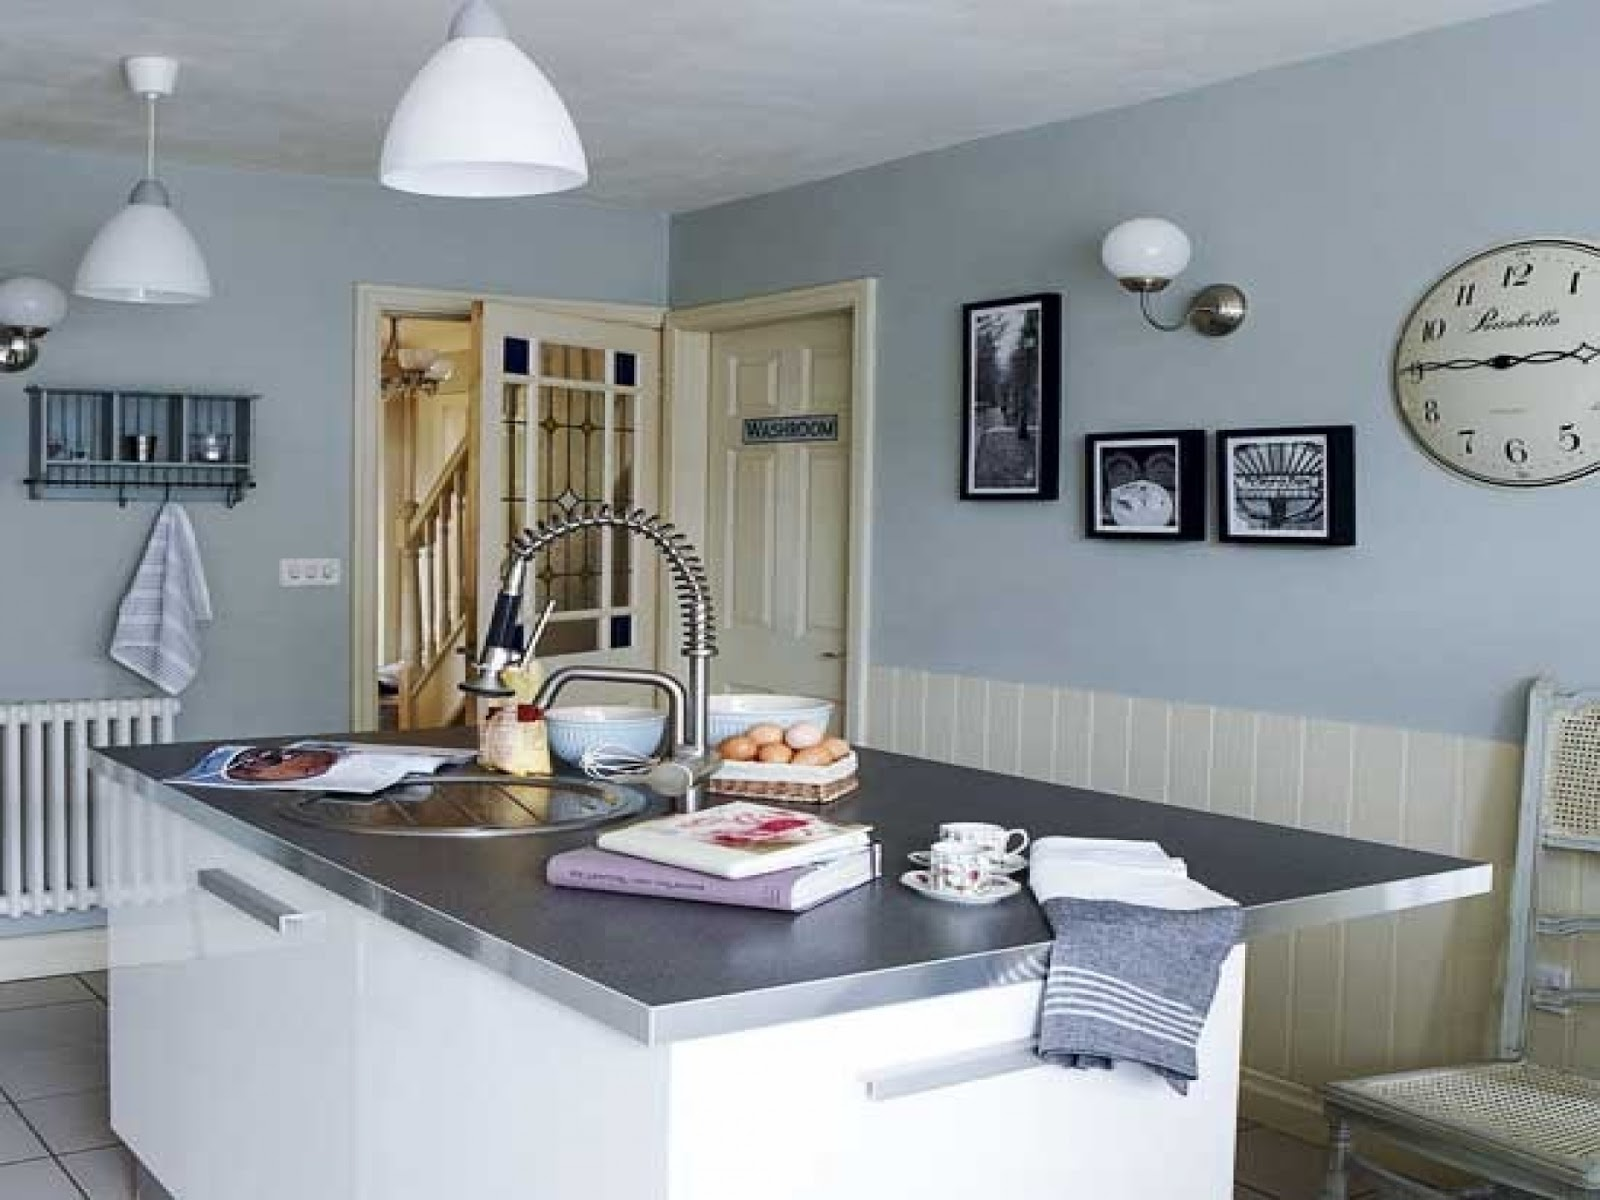 Blue Kitchen Walls: You'll Feel More Comfortable When Cooking